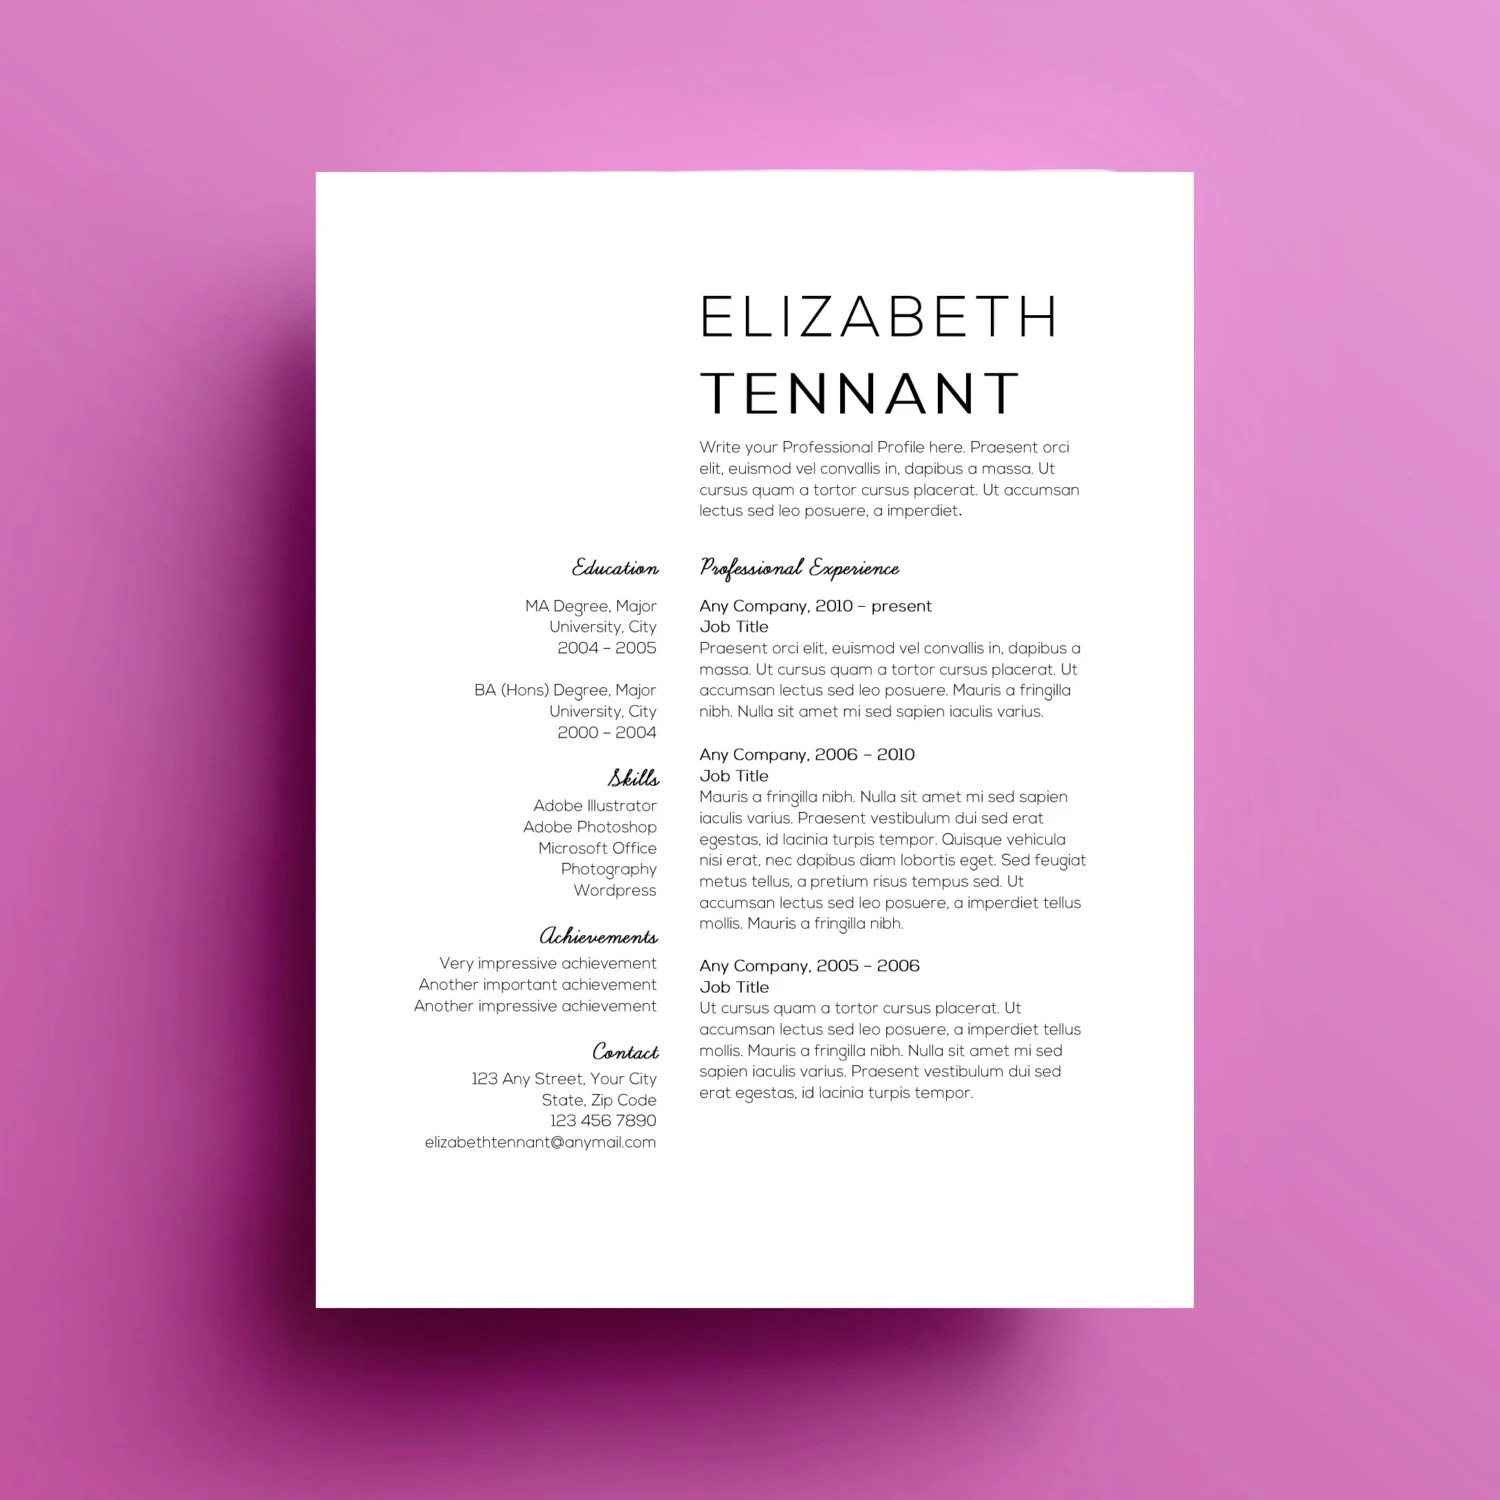 resume making help   cv template for a graphic designerresume making help resume help is here get ready for a smashing career mini st resumes